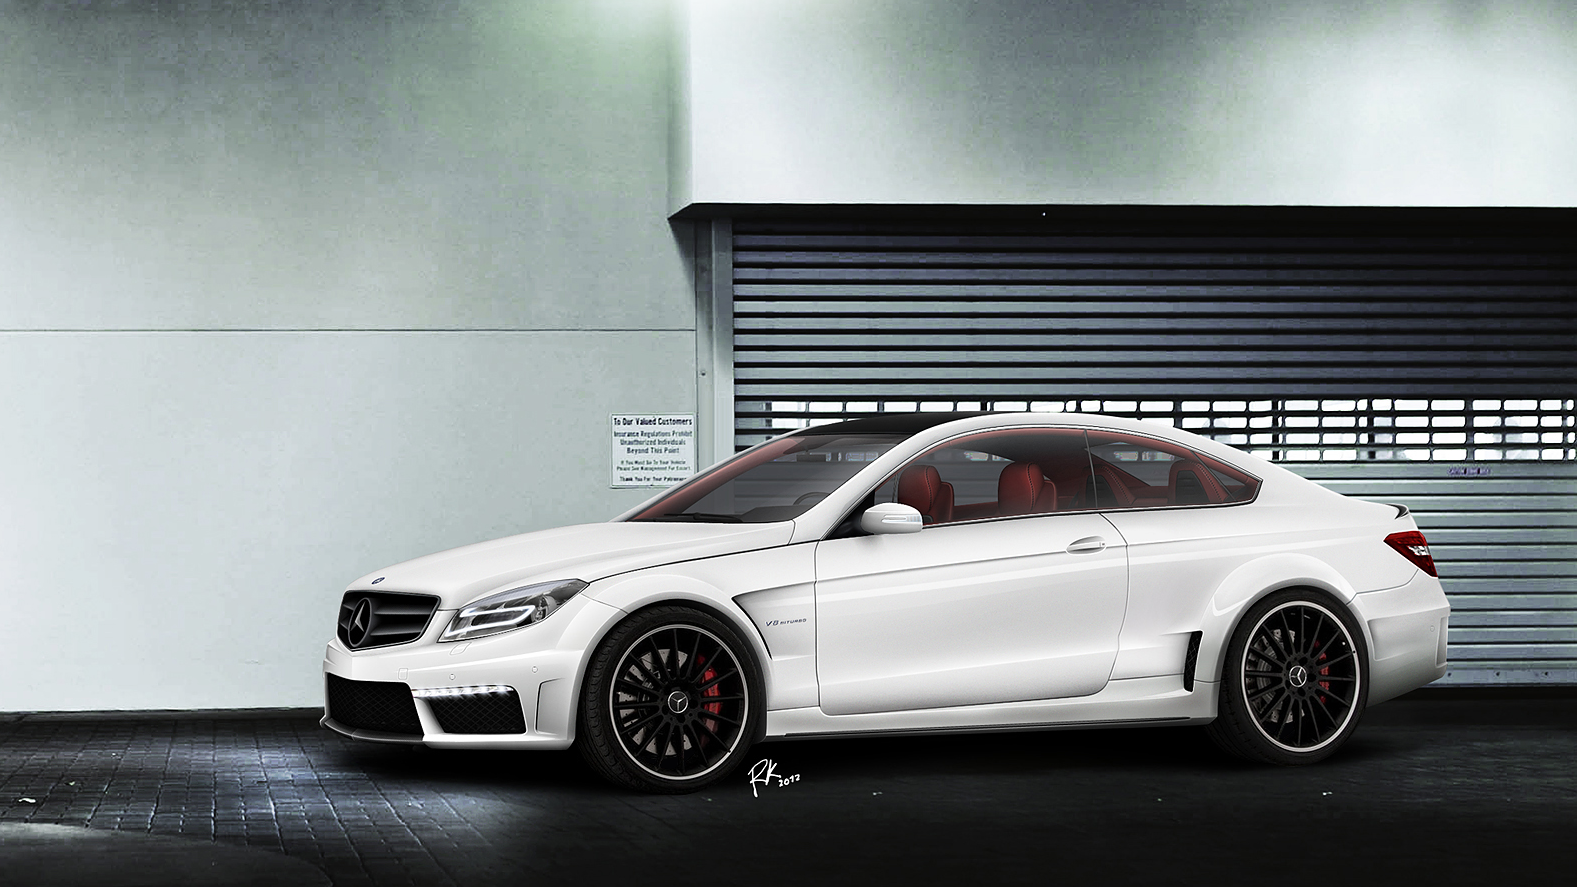 Mercedes benz ce63 amg concept render for Mercede benz amg